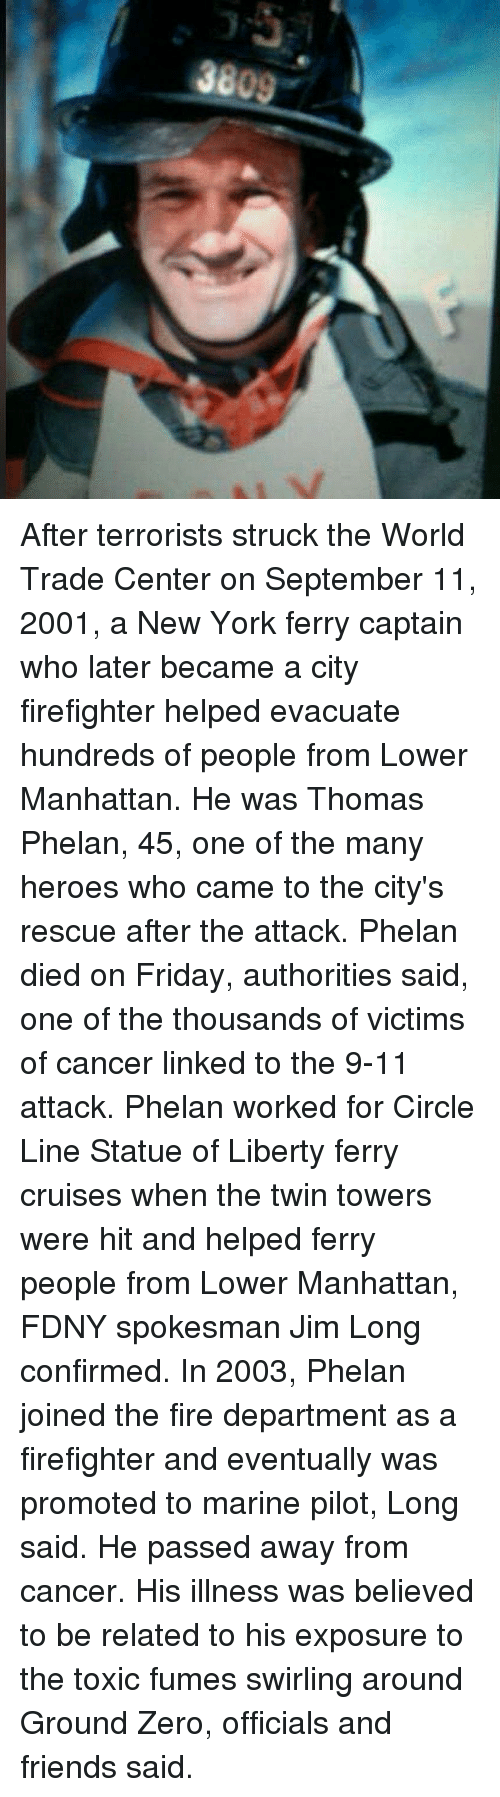 twin towers: After terrorists struck the World Trade Center on September 11, 2001, a New York ferry captain who later became a city firefighter helped evacuate hundreds of people from Lower Manhattan. He was Thomas Phelan, 45, one of the many heroes who came to the city's rescue after the attack. Phelan died on Friday, authorities said, one of the thousands of victims of cancer linked to the 9-11 attack. Phelan worked for Circle Line Statue of Liberty ferry cruises when the twin towers were hit and helped ferry people from Lower Manhattan, FDNY spokesman Jim Long confirmed. In 2003, Phelan joined the fire department as a firefighter and eventually was promoted to marine pilot, Long said. He passed away from cancer. His illness was believed to be related to his exposure to the toxic fumes swirling around Ground Zero, officials and friends said.